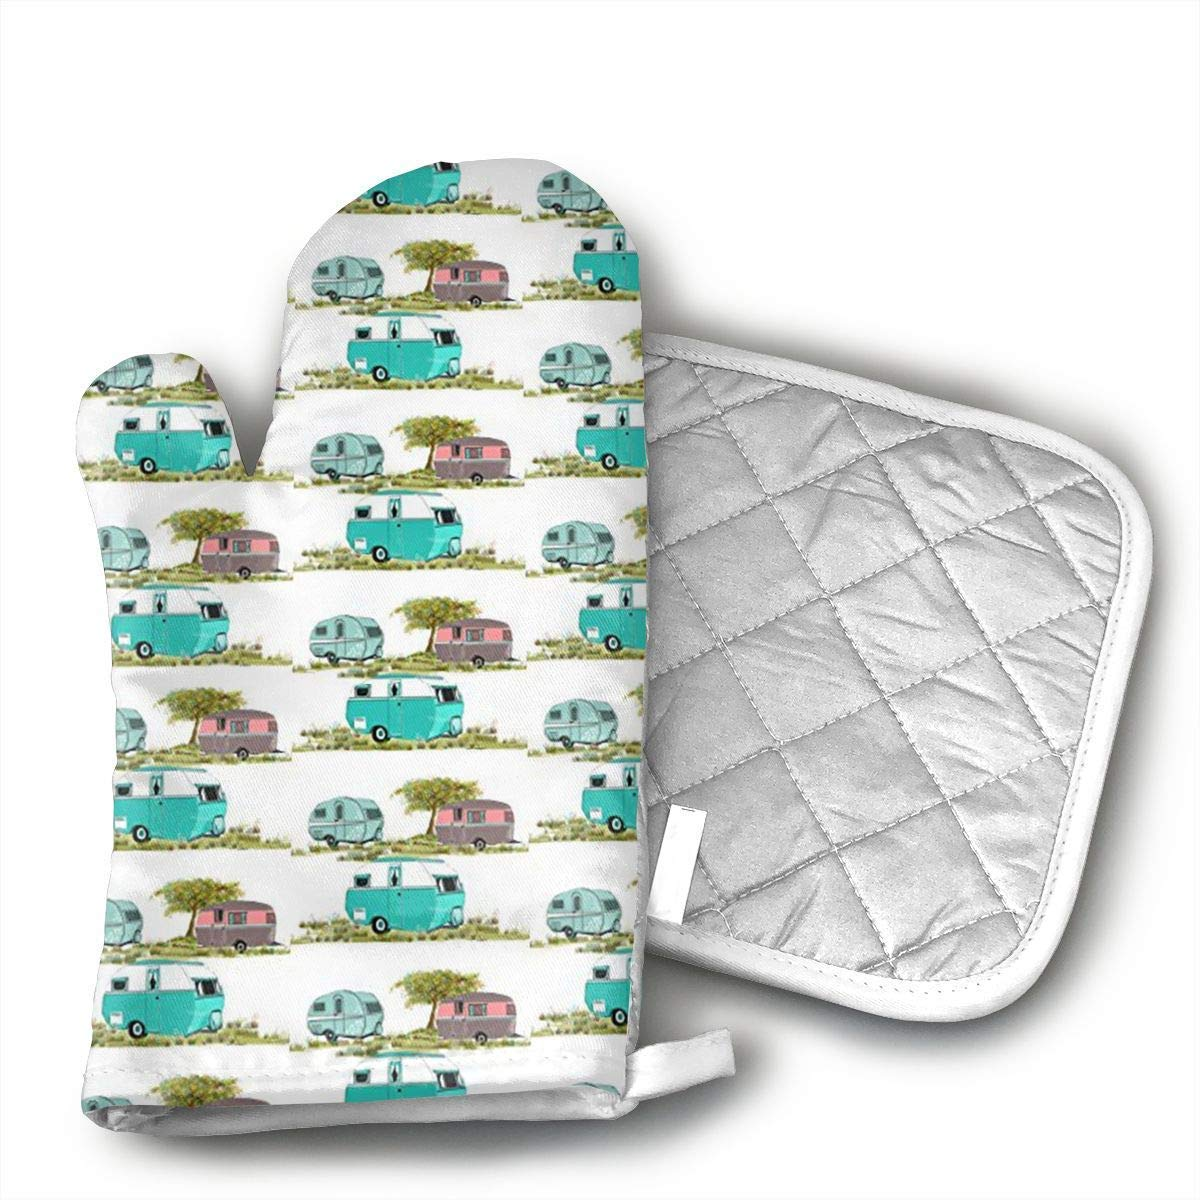 Insulation Lets Go Camping Retro Travel Trailers Oven Mitts,Professional Heat Resistant Microwave BBQ Oven Insulation Thickening Cotton Gloves Baking Pot Mitts Soft Inner Lining Kitchen Cooking